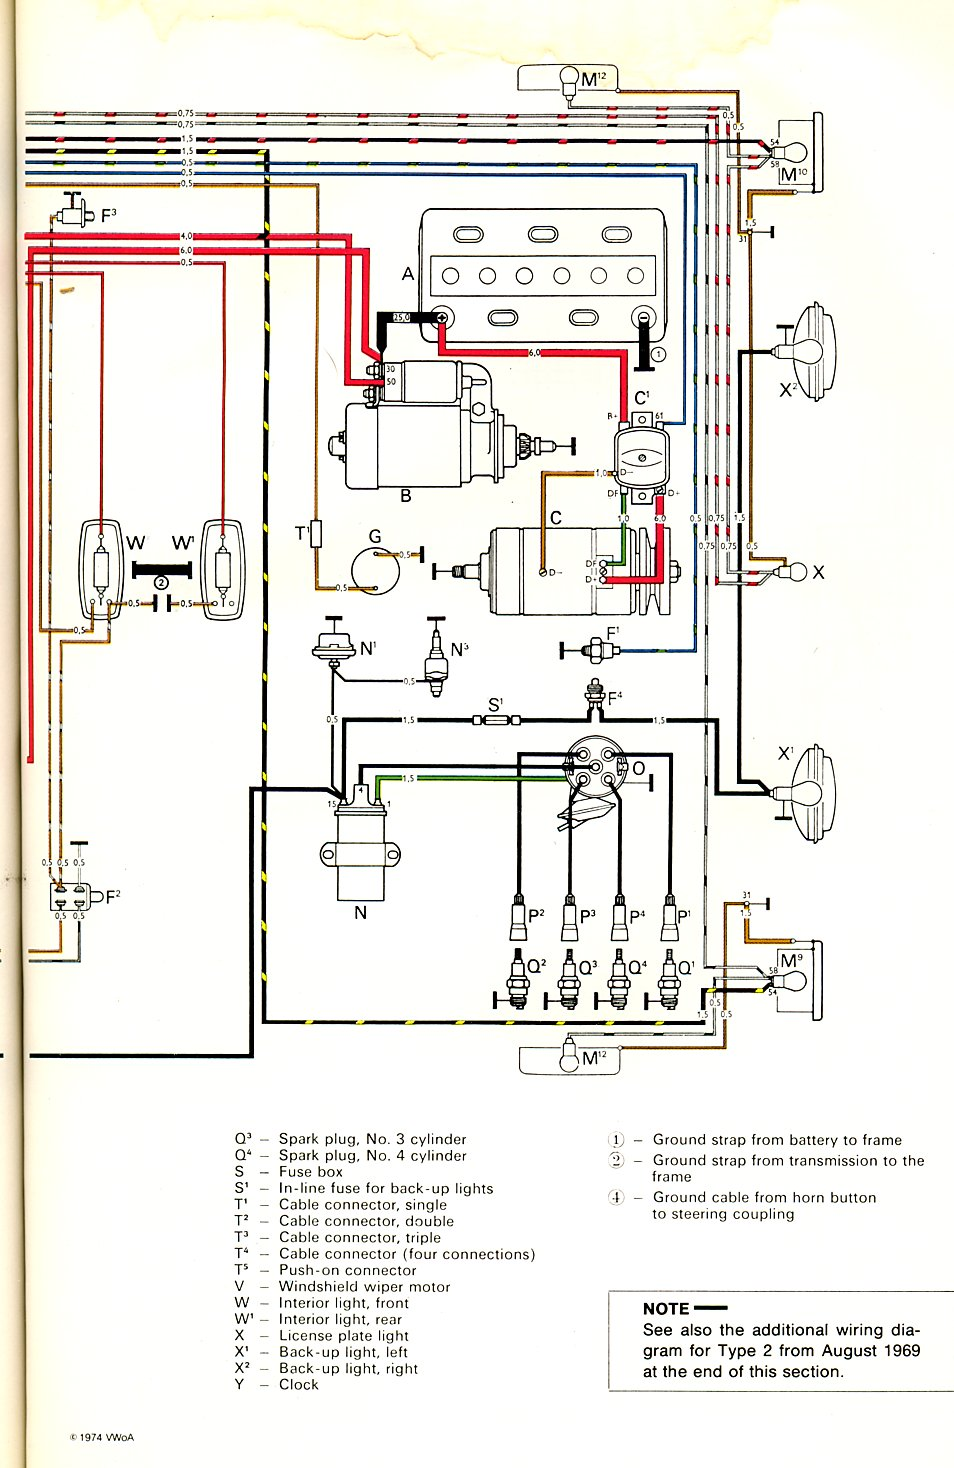 baybus_70b 1970 bus wiring diagram thegoldenbug com Volkswagen Type 2 Wiring Harness at gsmx.co